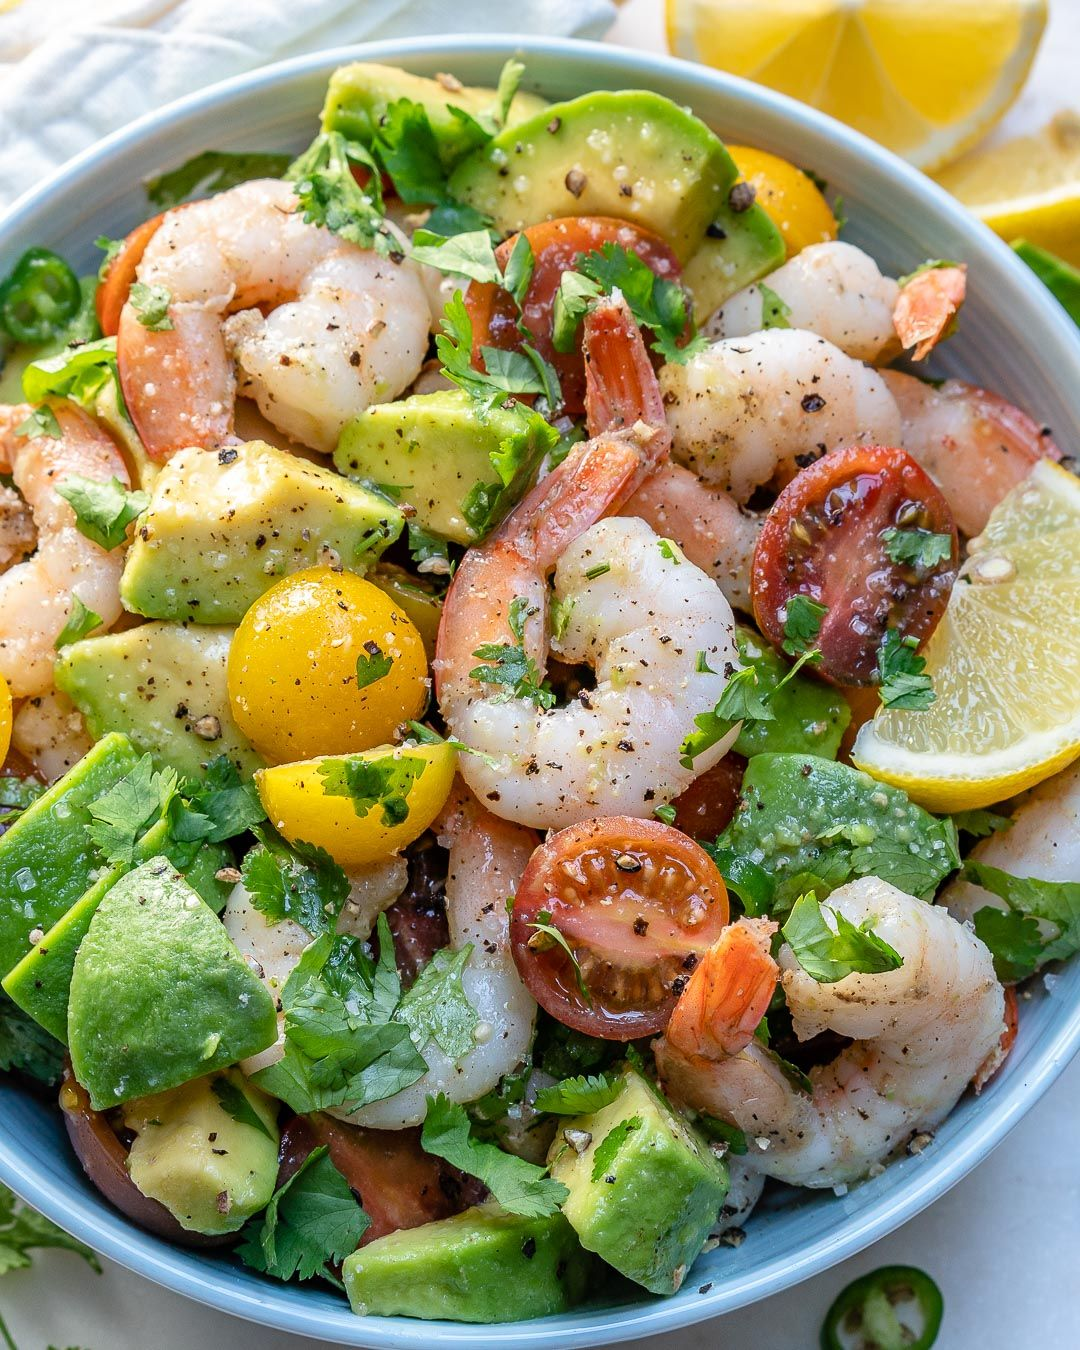 Eat this Lemony Shrimp + Avocado + Tomato Salad fo